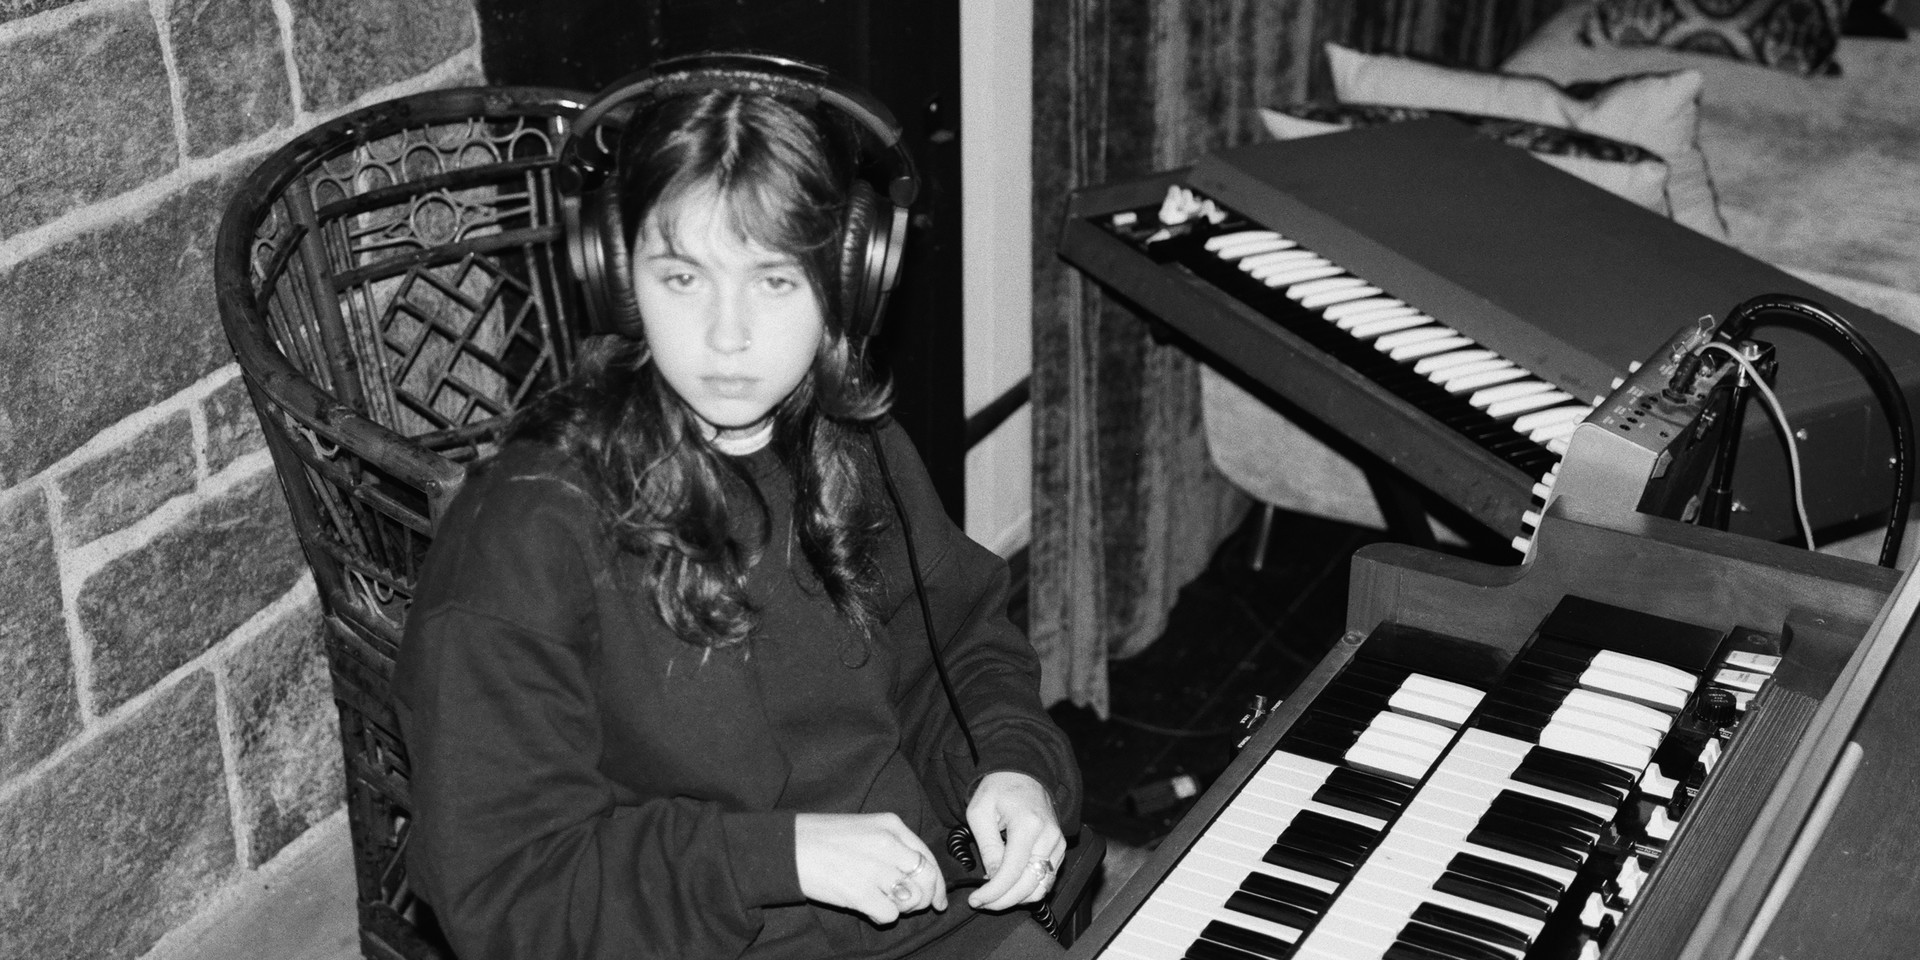 Clairo returns with sophomore album 'Sling,' co-produced with Jack Antonoff - listen